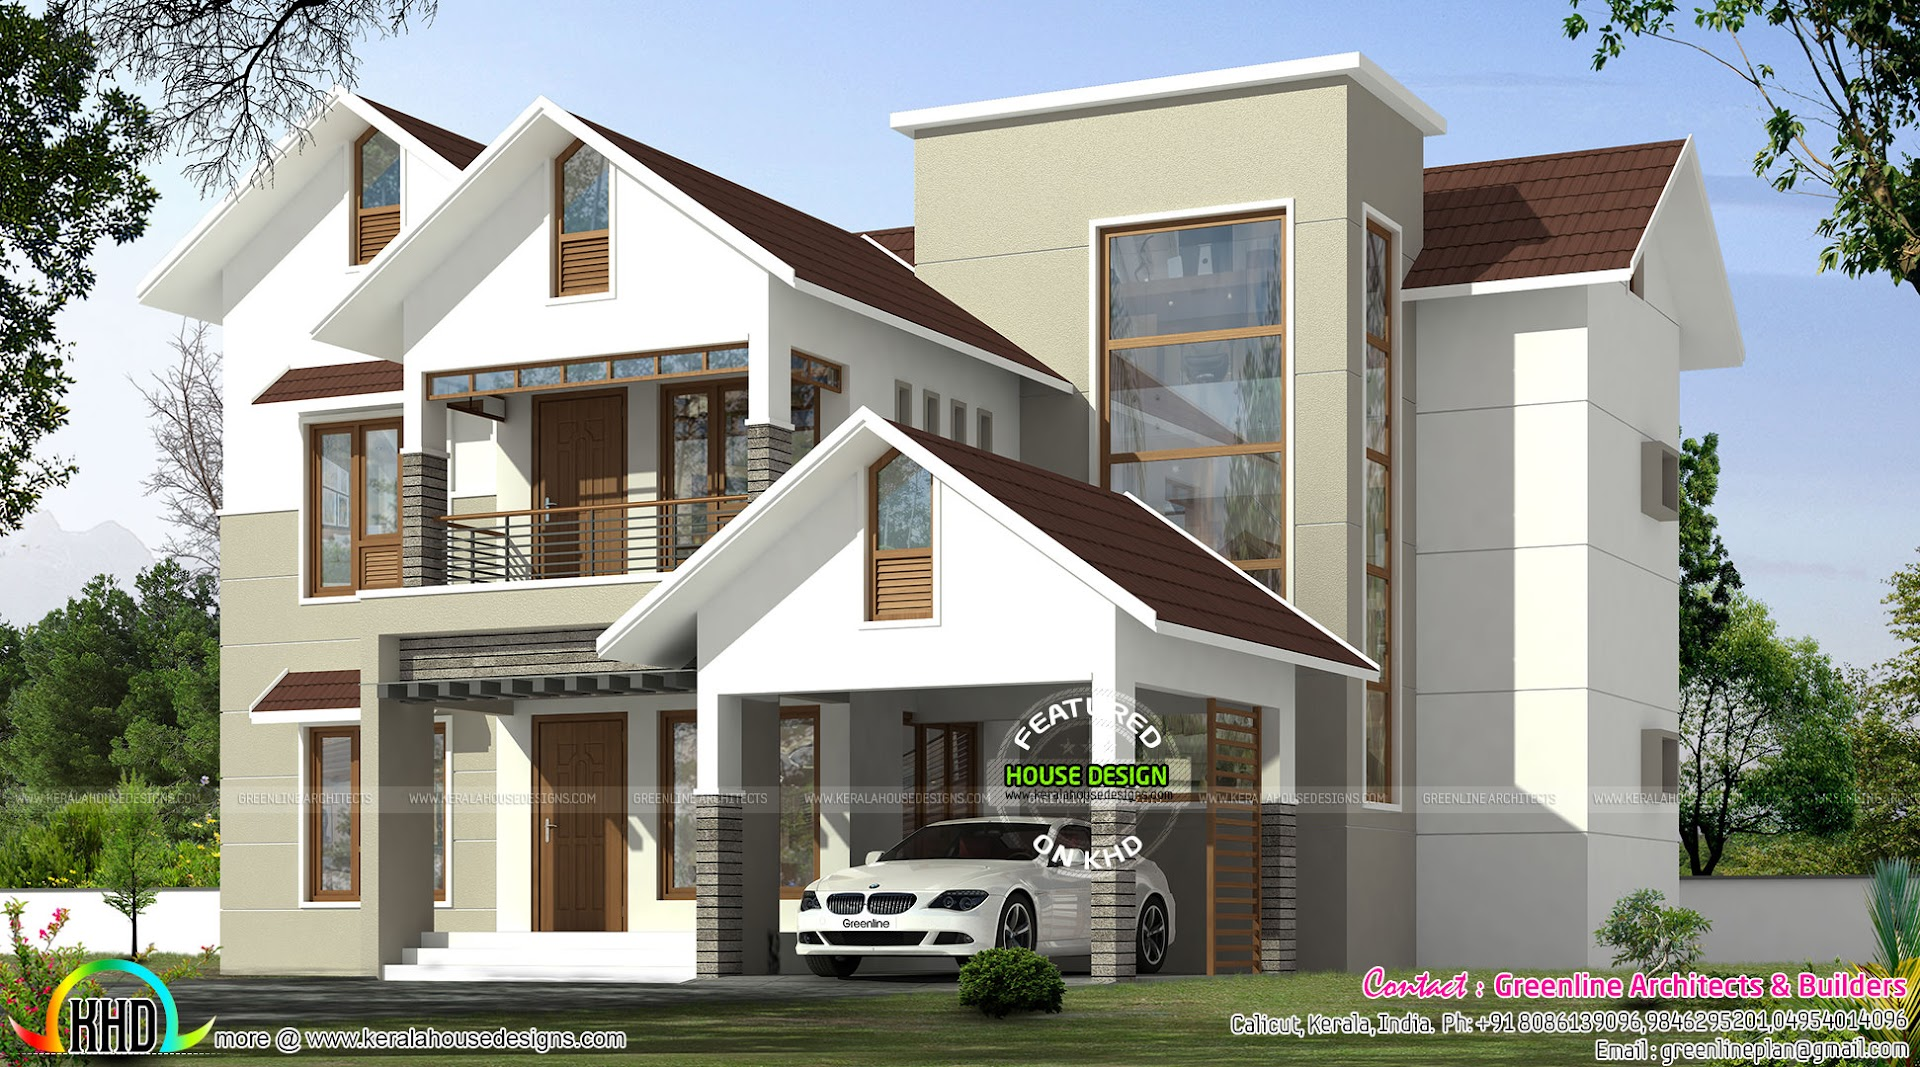 See floor plans read more please follow kerala home design - Design Style Sloped Modern Style See Facility Details Read More Please Follow Kerala Home Design